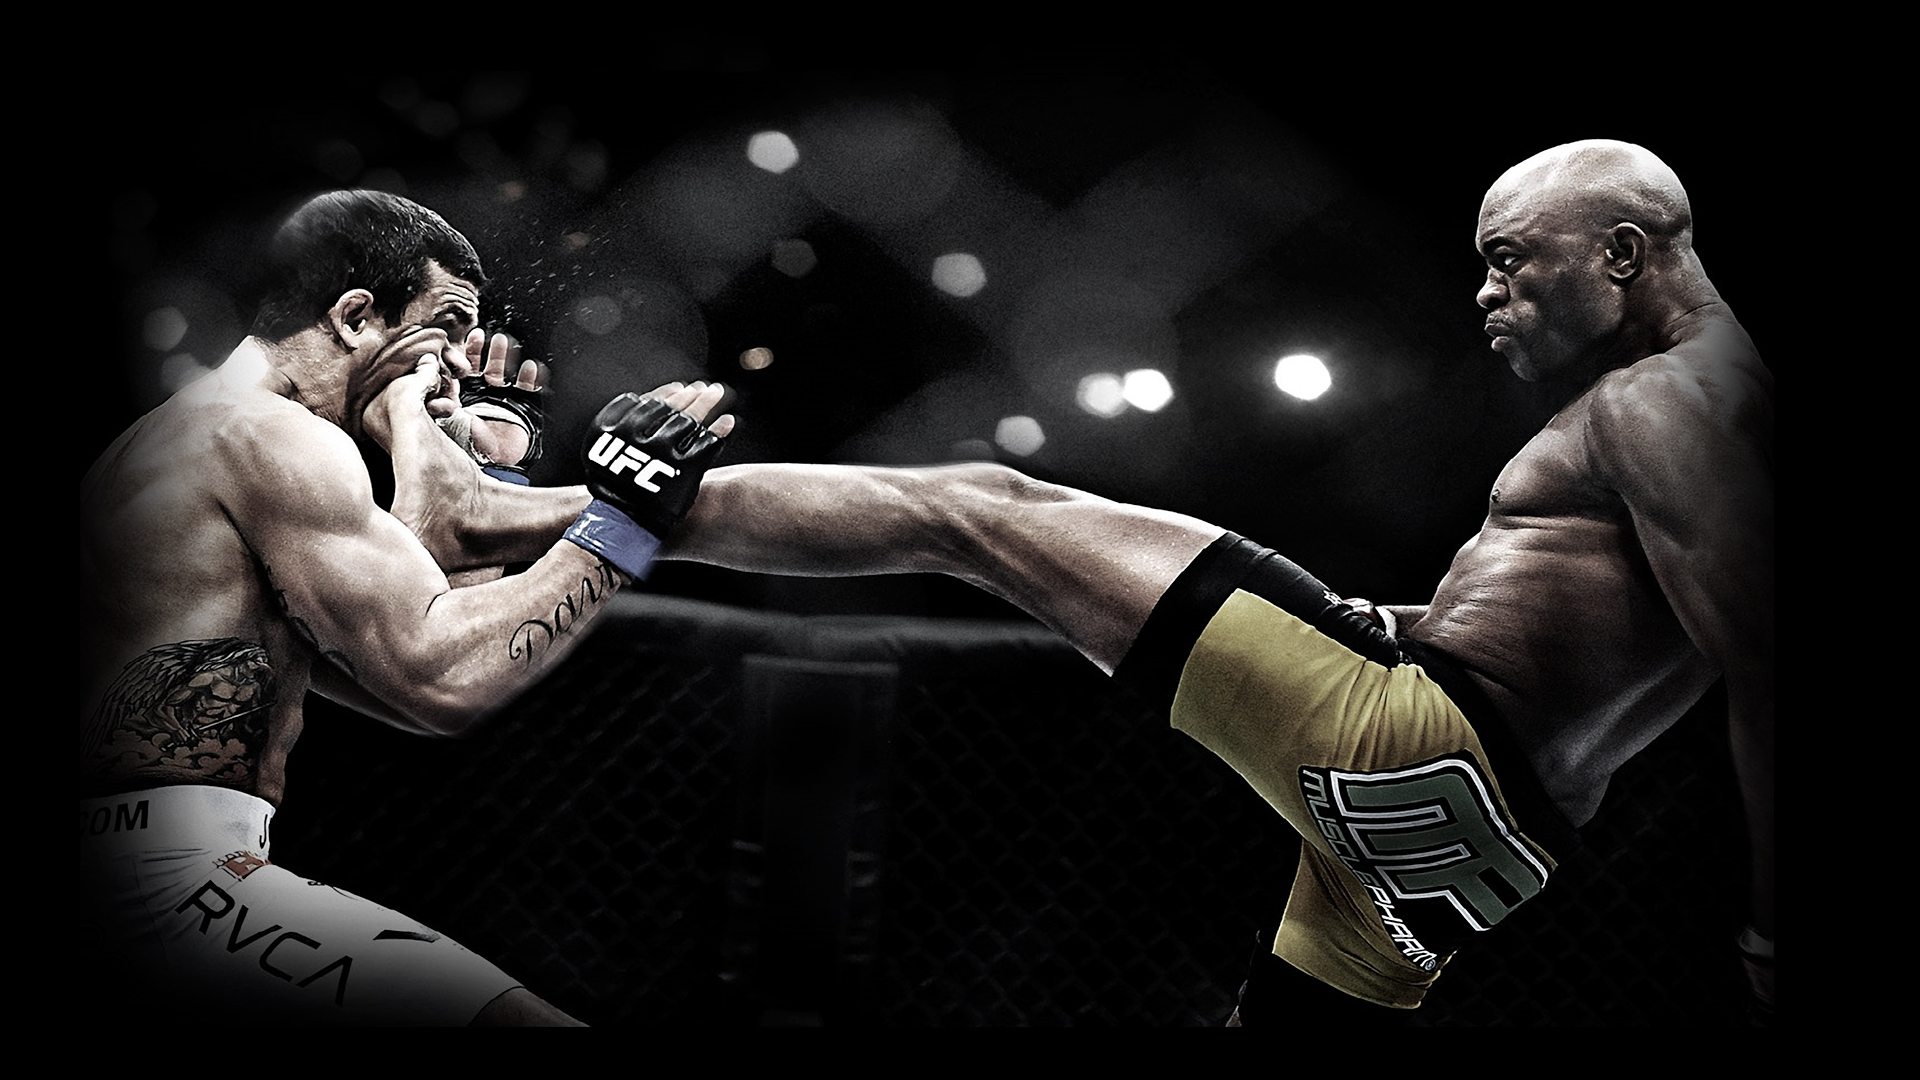 UFC Wallpapers & Pictures